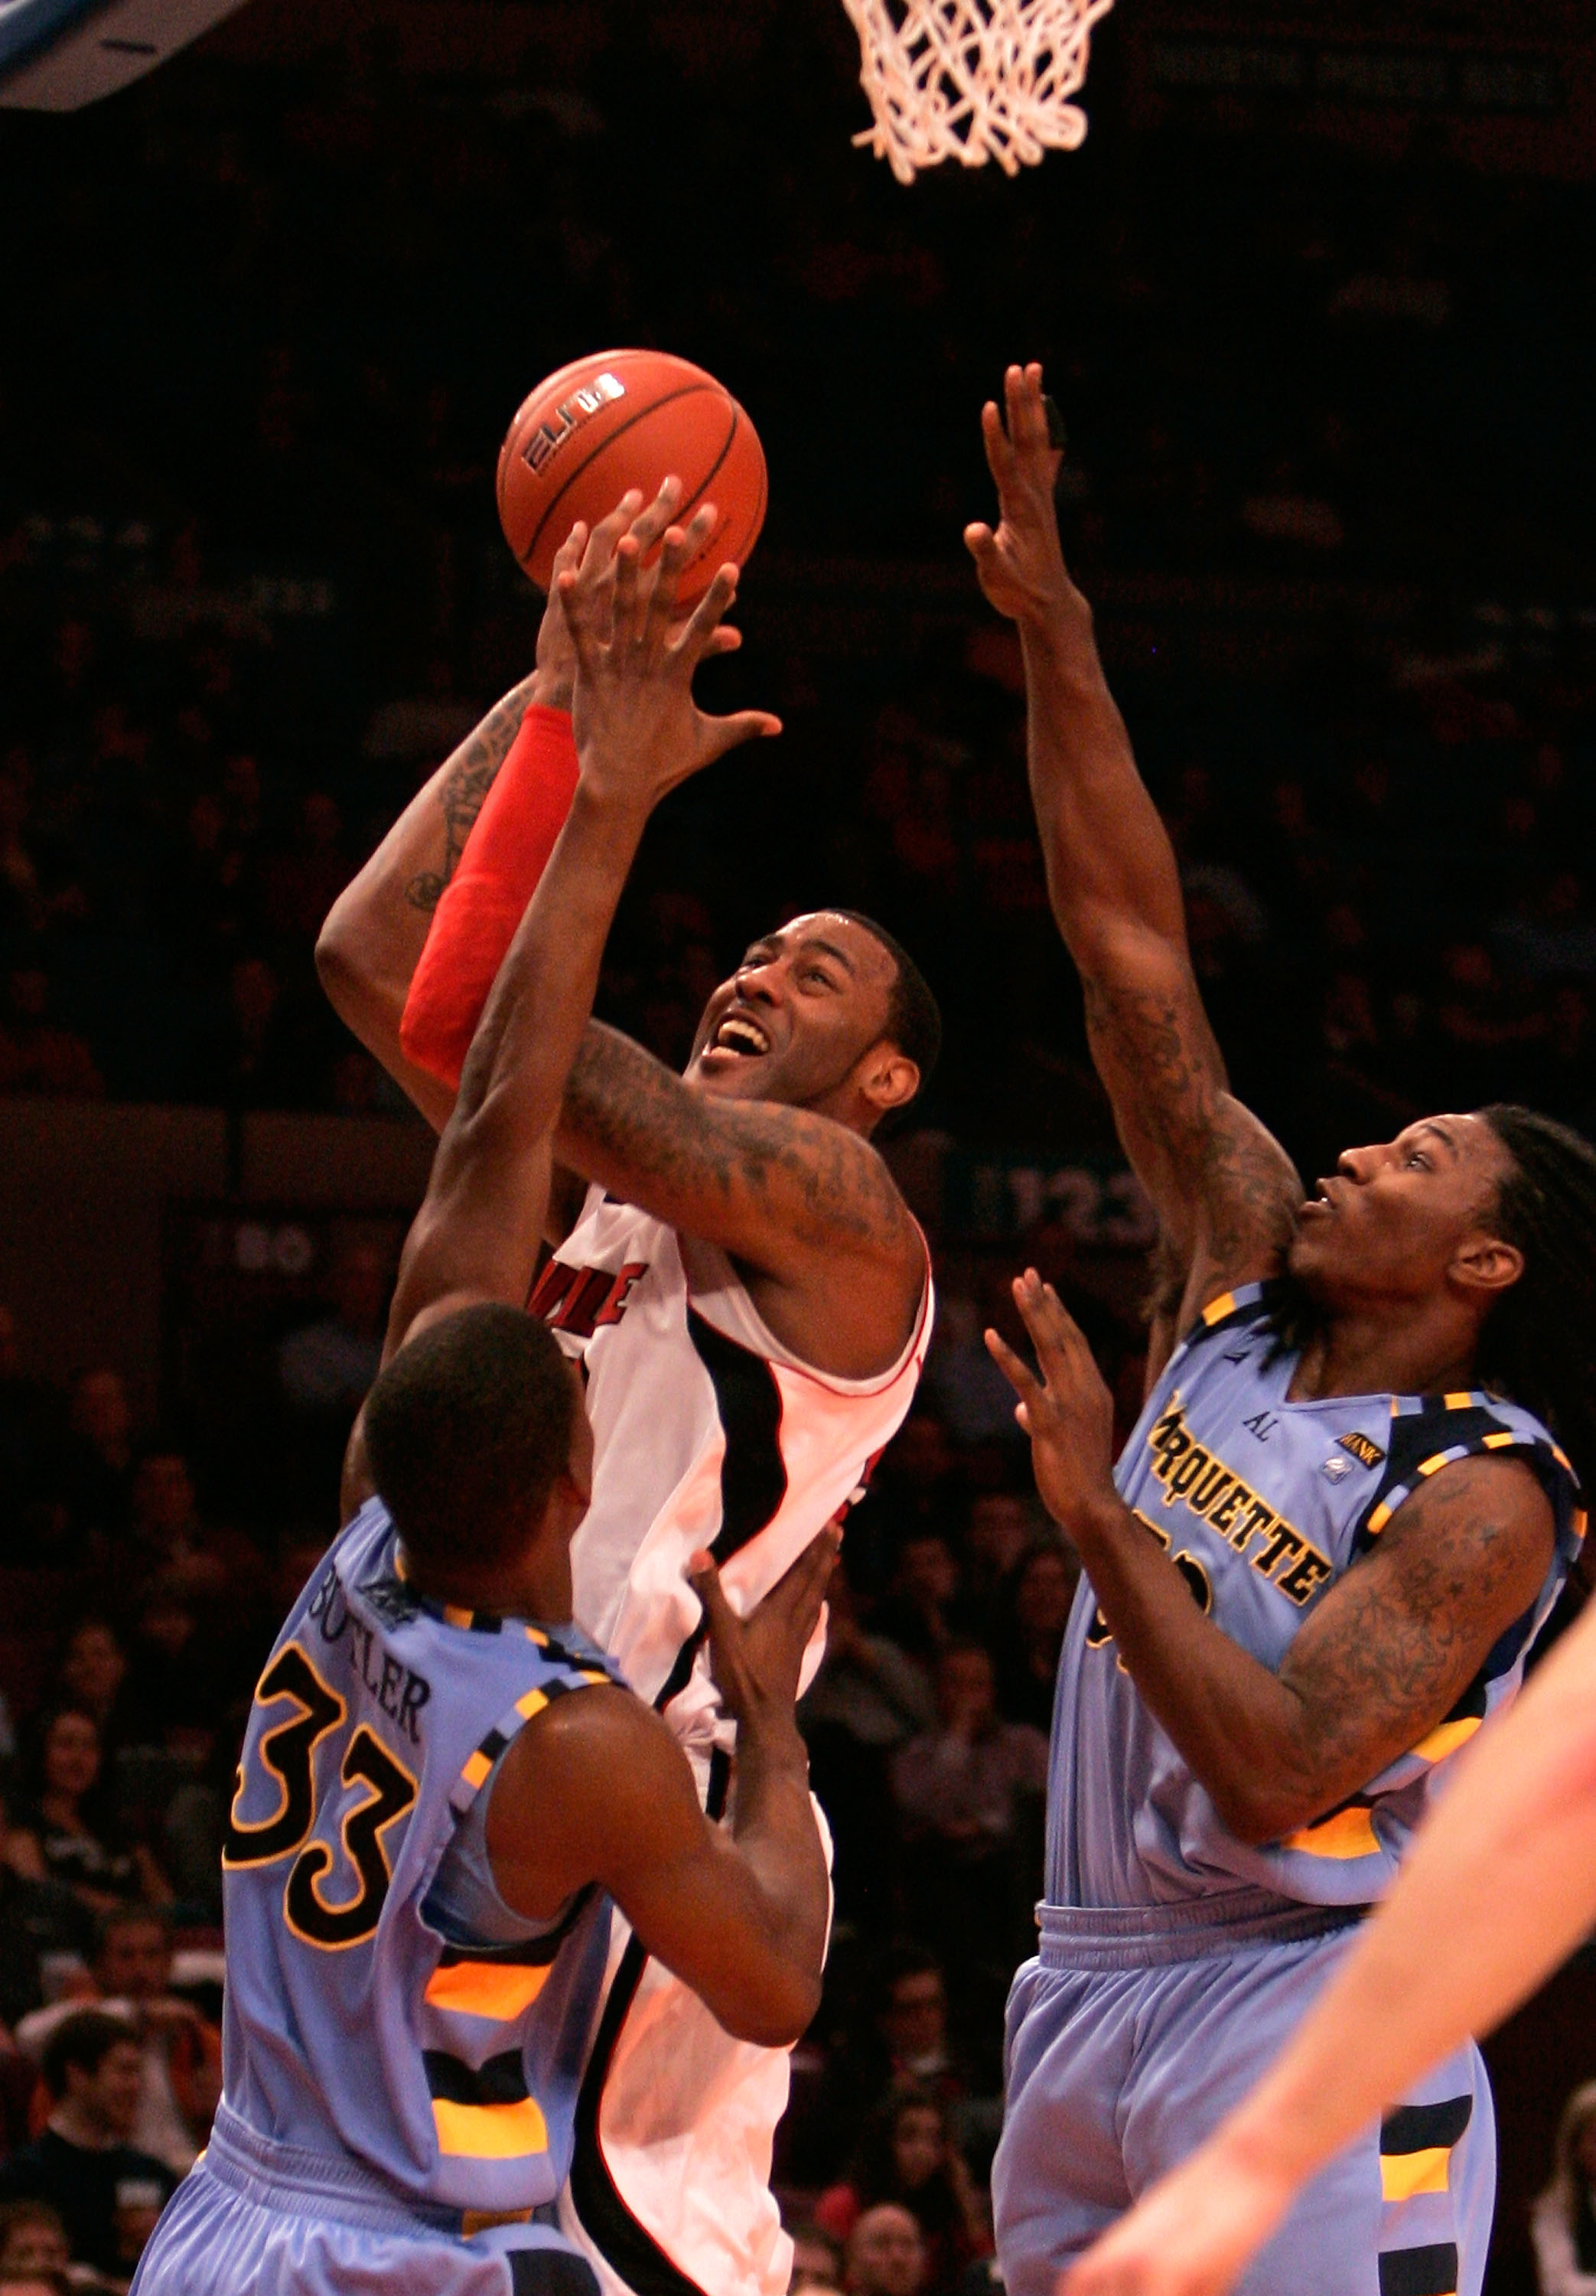 NEW YORK, NY - MARCH 10:  Terrence Jennings #23 of the Louisville Cardinals drives to the basket against Jimmy Butler #33 and Jae Crowder #32 of the Marquette Golden Eagles during the quarterfinals of the 2011 Big East Men's Basketball Tournament presente